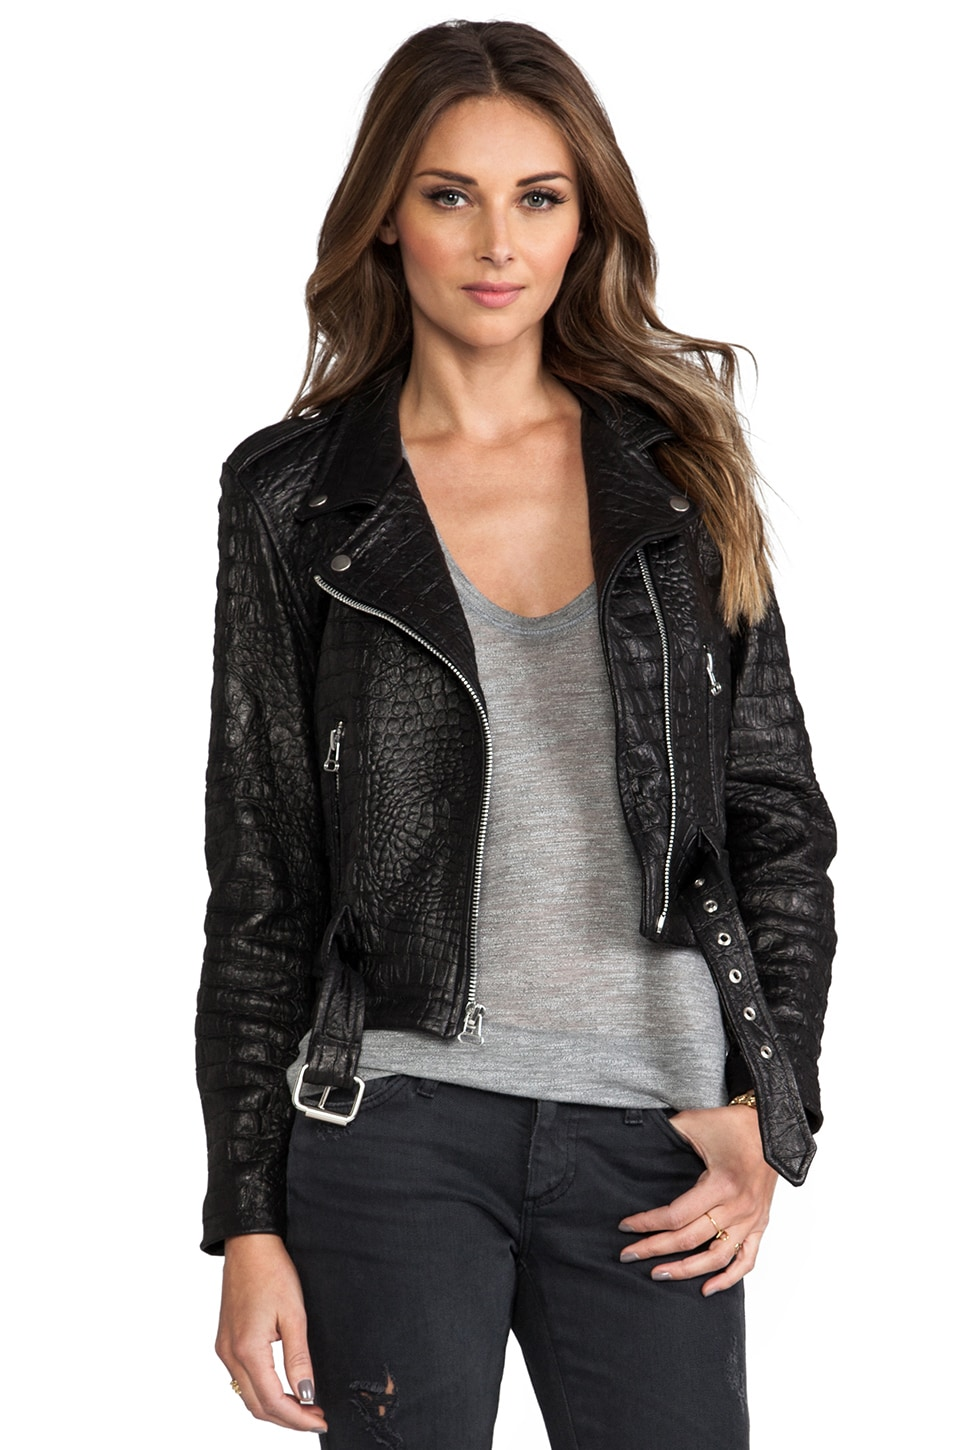 Laer Croc Shrunken Moto Jacket in Black